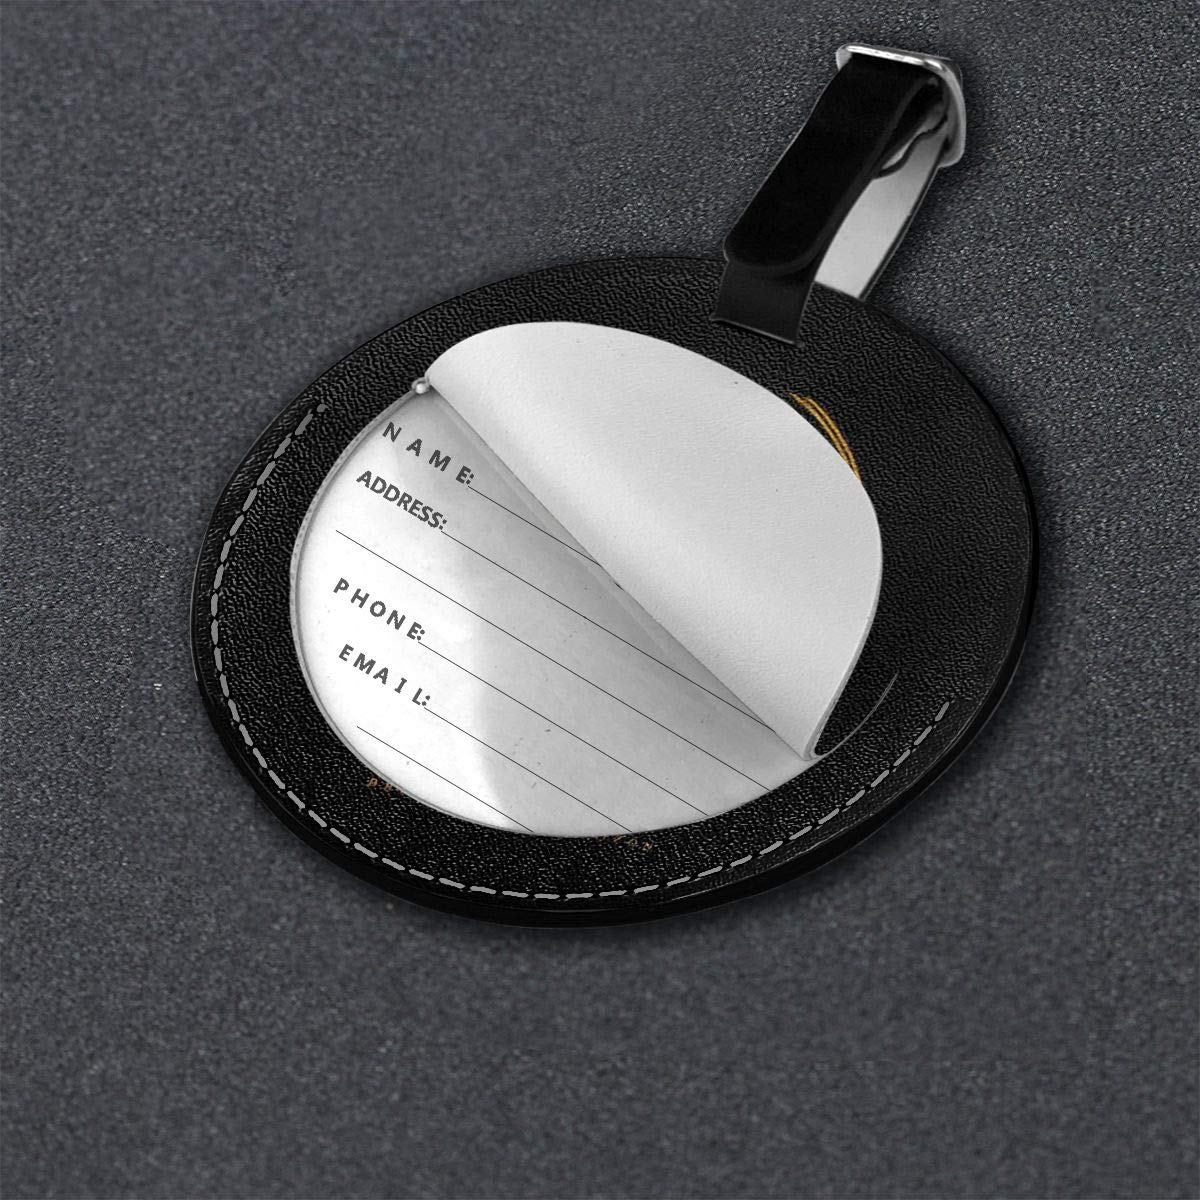 Bring Me The Horizon Travel Leather Round Luggage Tags Suitcase Labels Bag